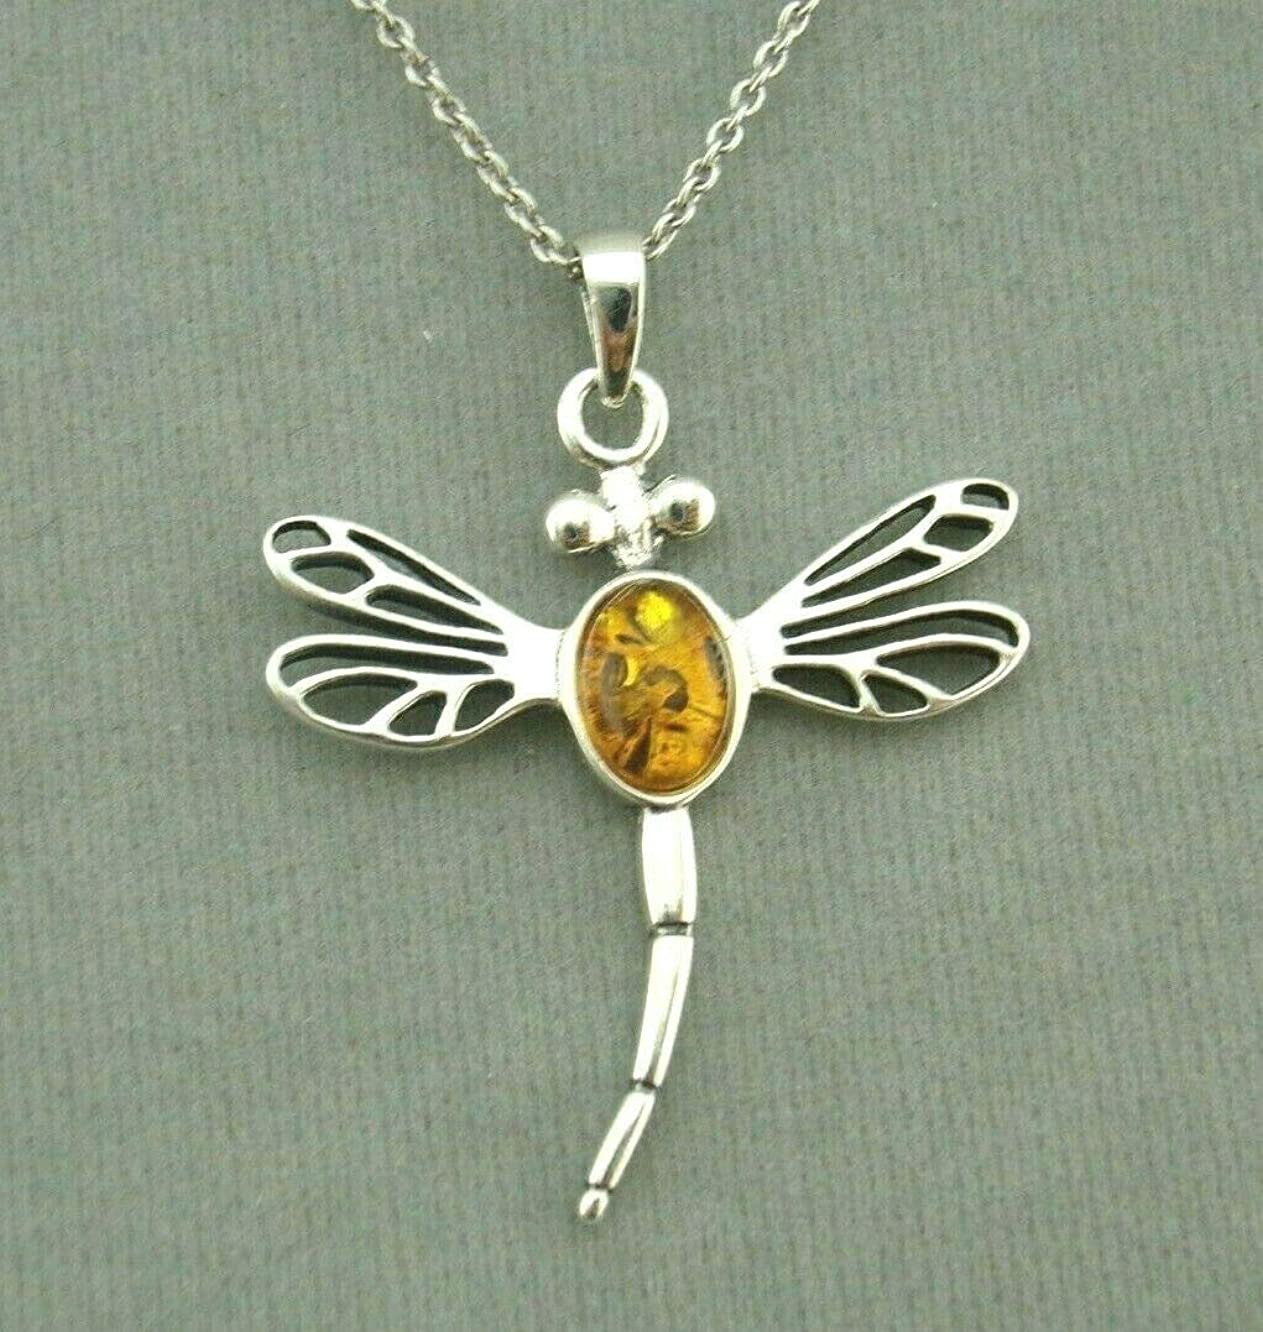 Dragonfly Pendant Necklace For Women Amber Silver Jewelry NEW